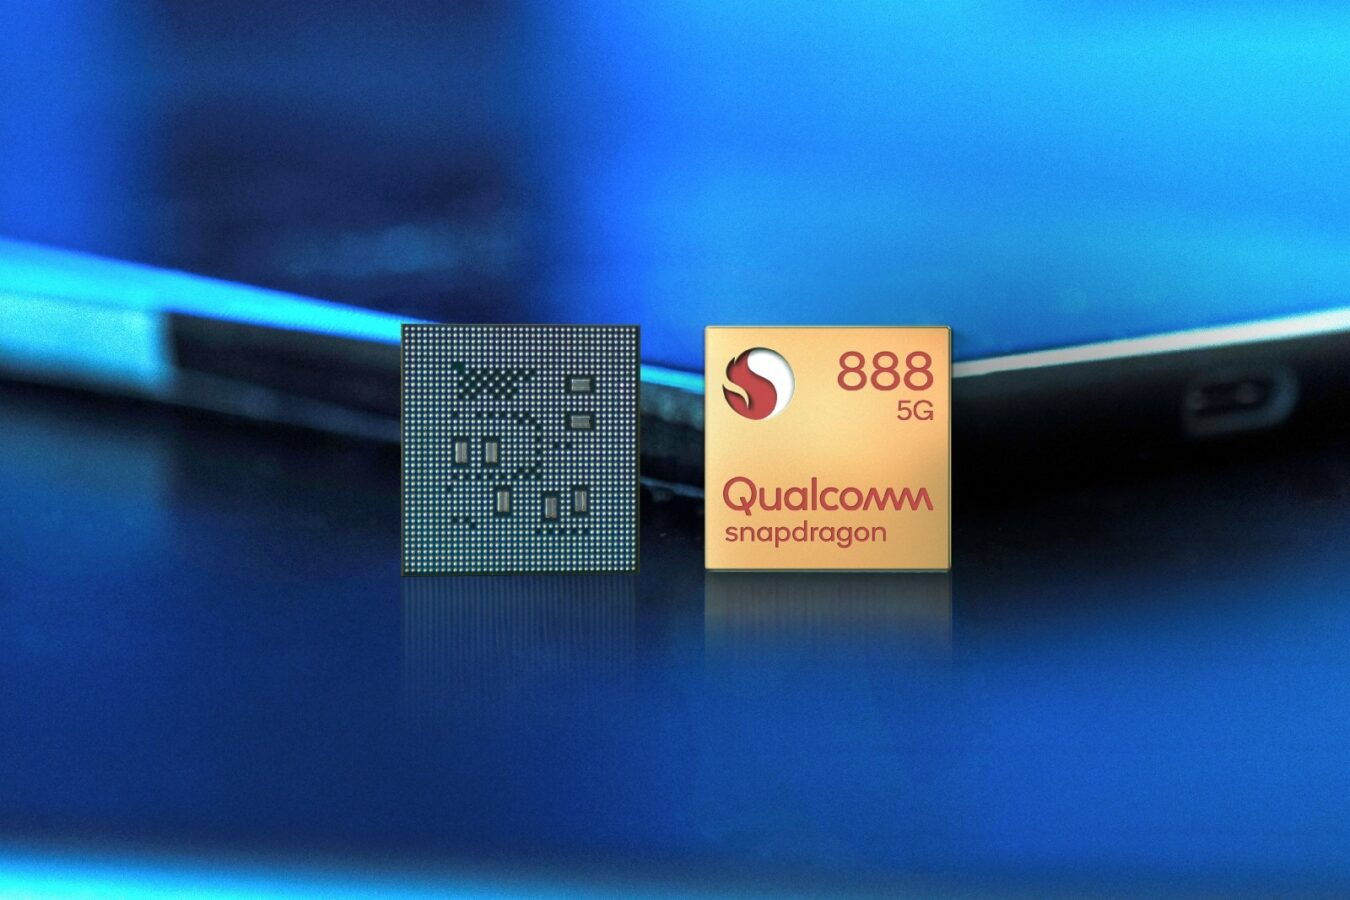 procesor Qualcomm Snapdragon 888 processor